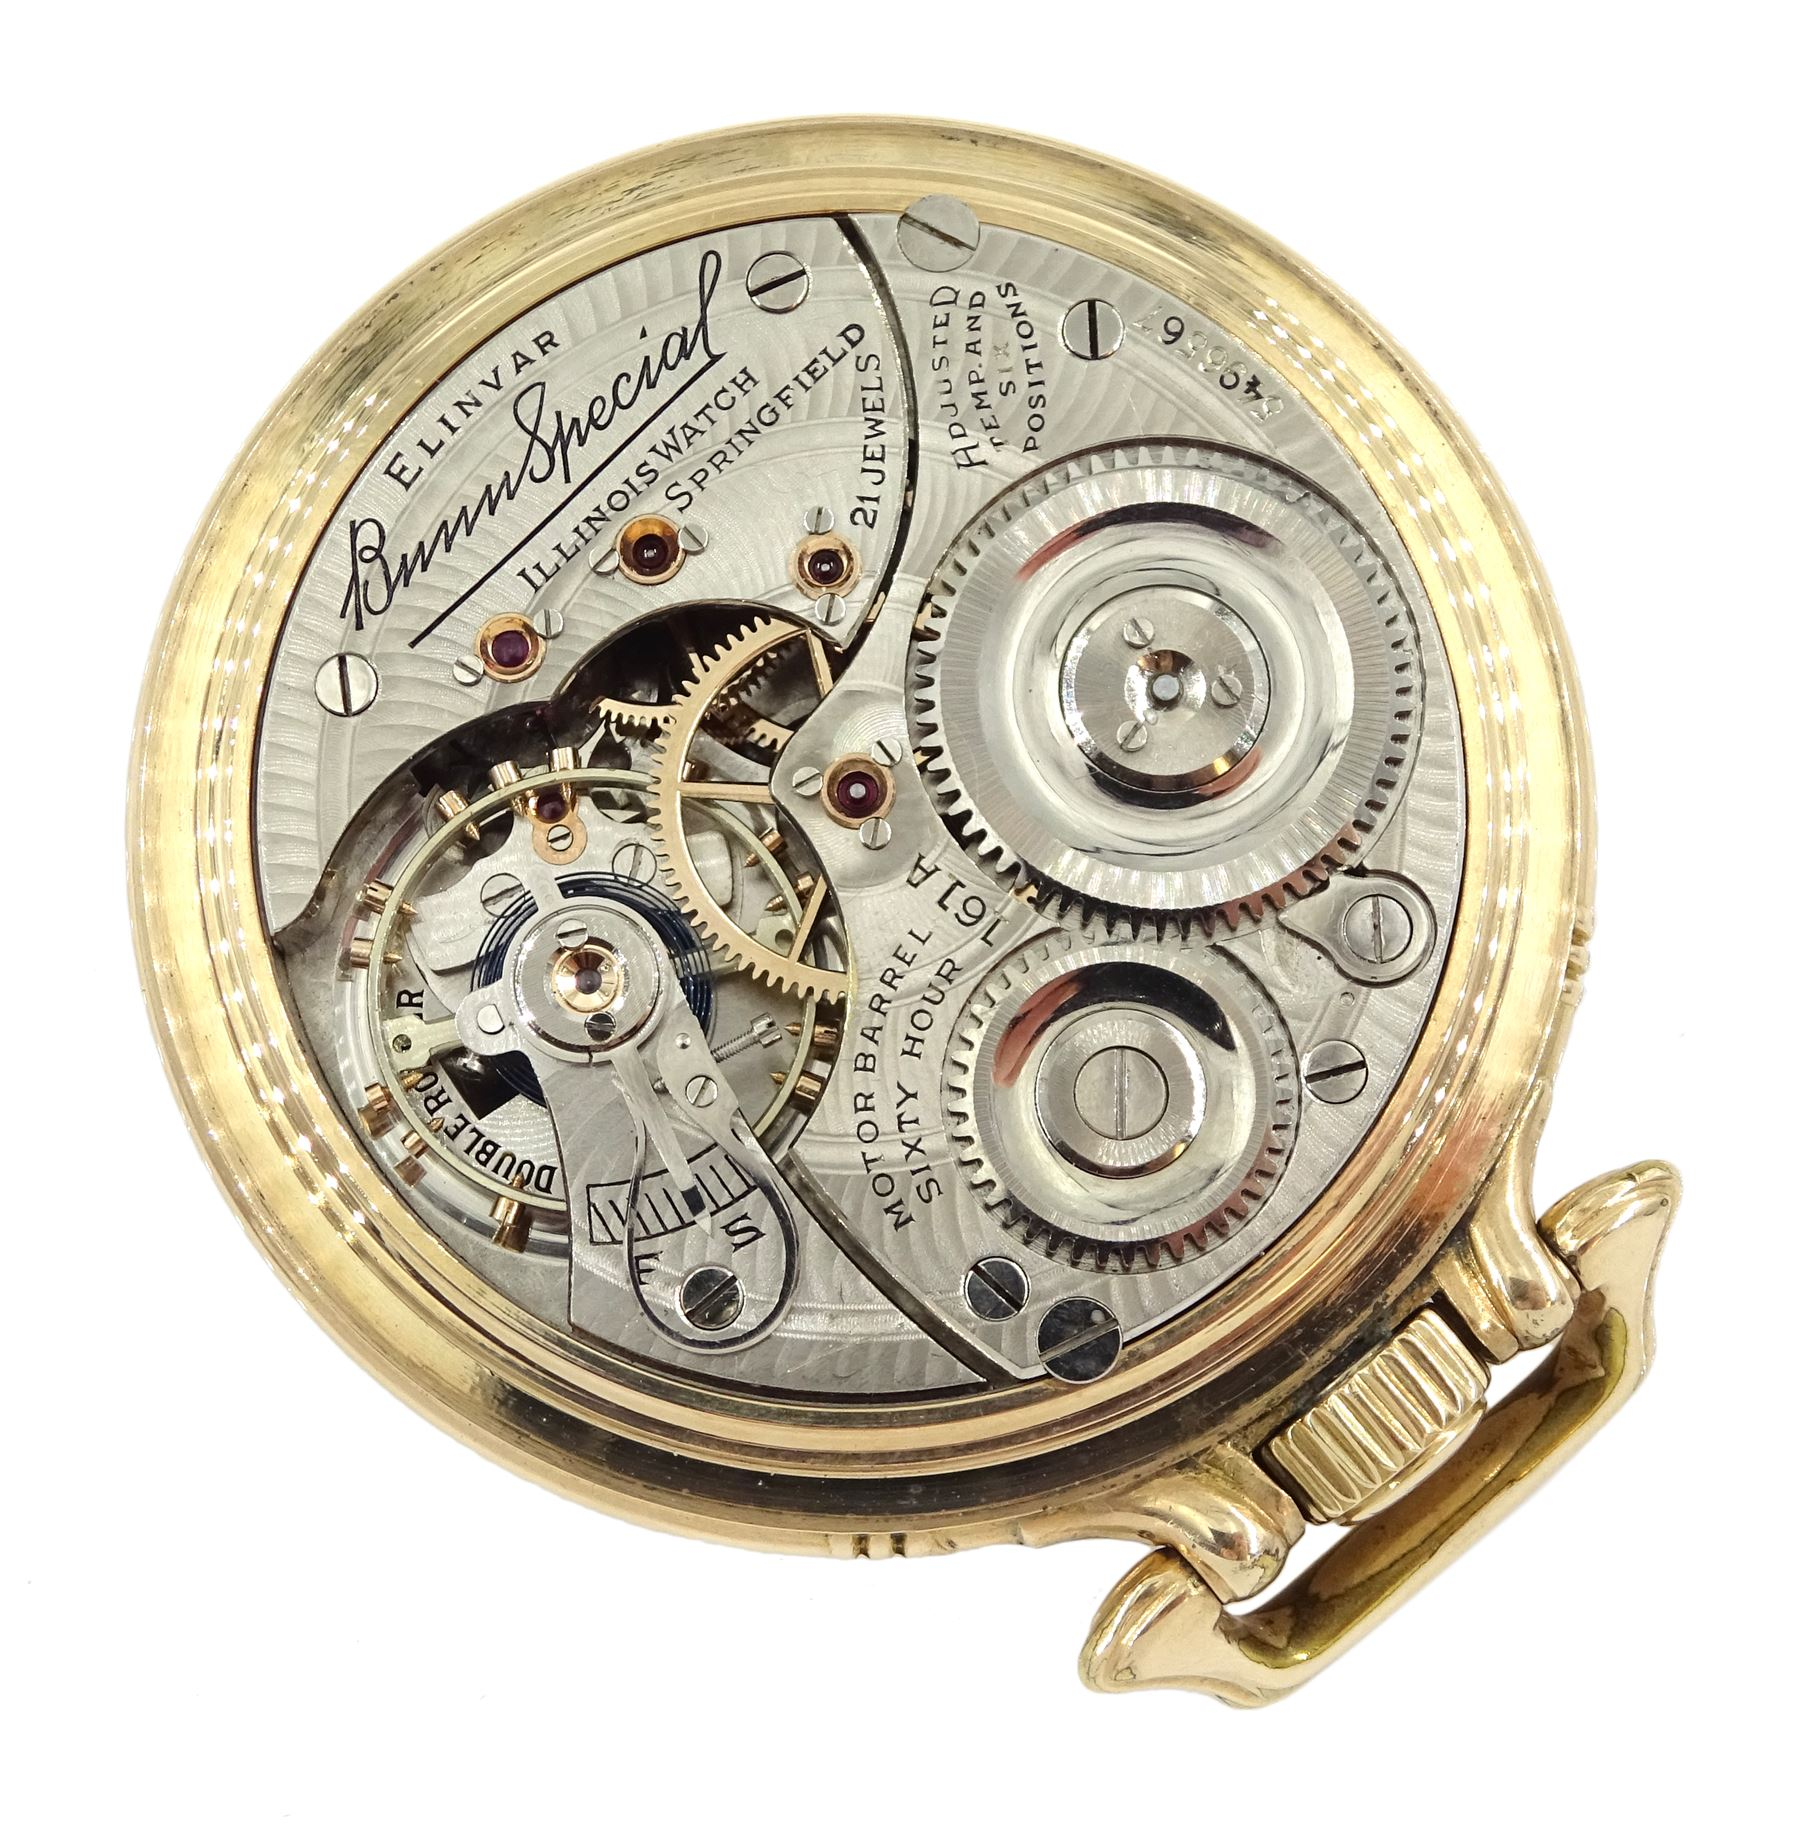 Illinois Watch Company gold-plated open face Elinvar 'Bunn Special' 161A, keyless 21 jewels motor ba - Image 3 of 3